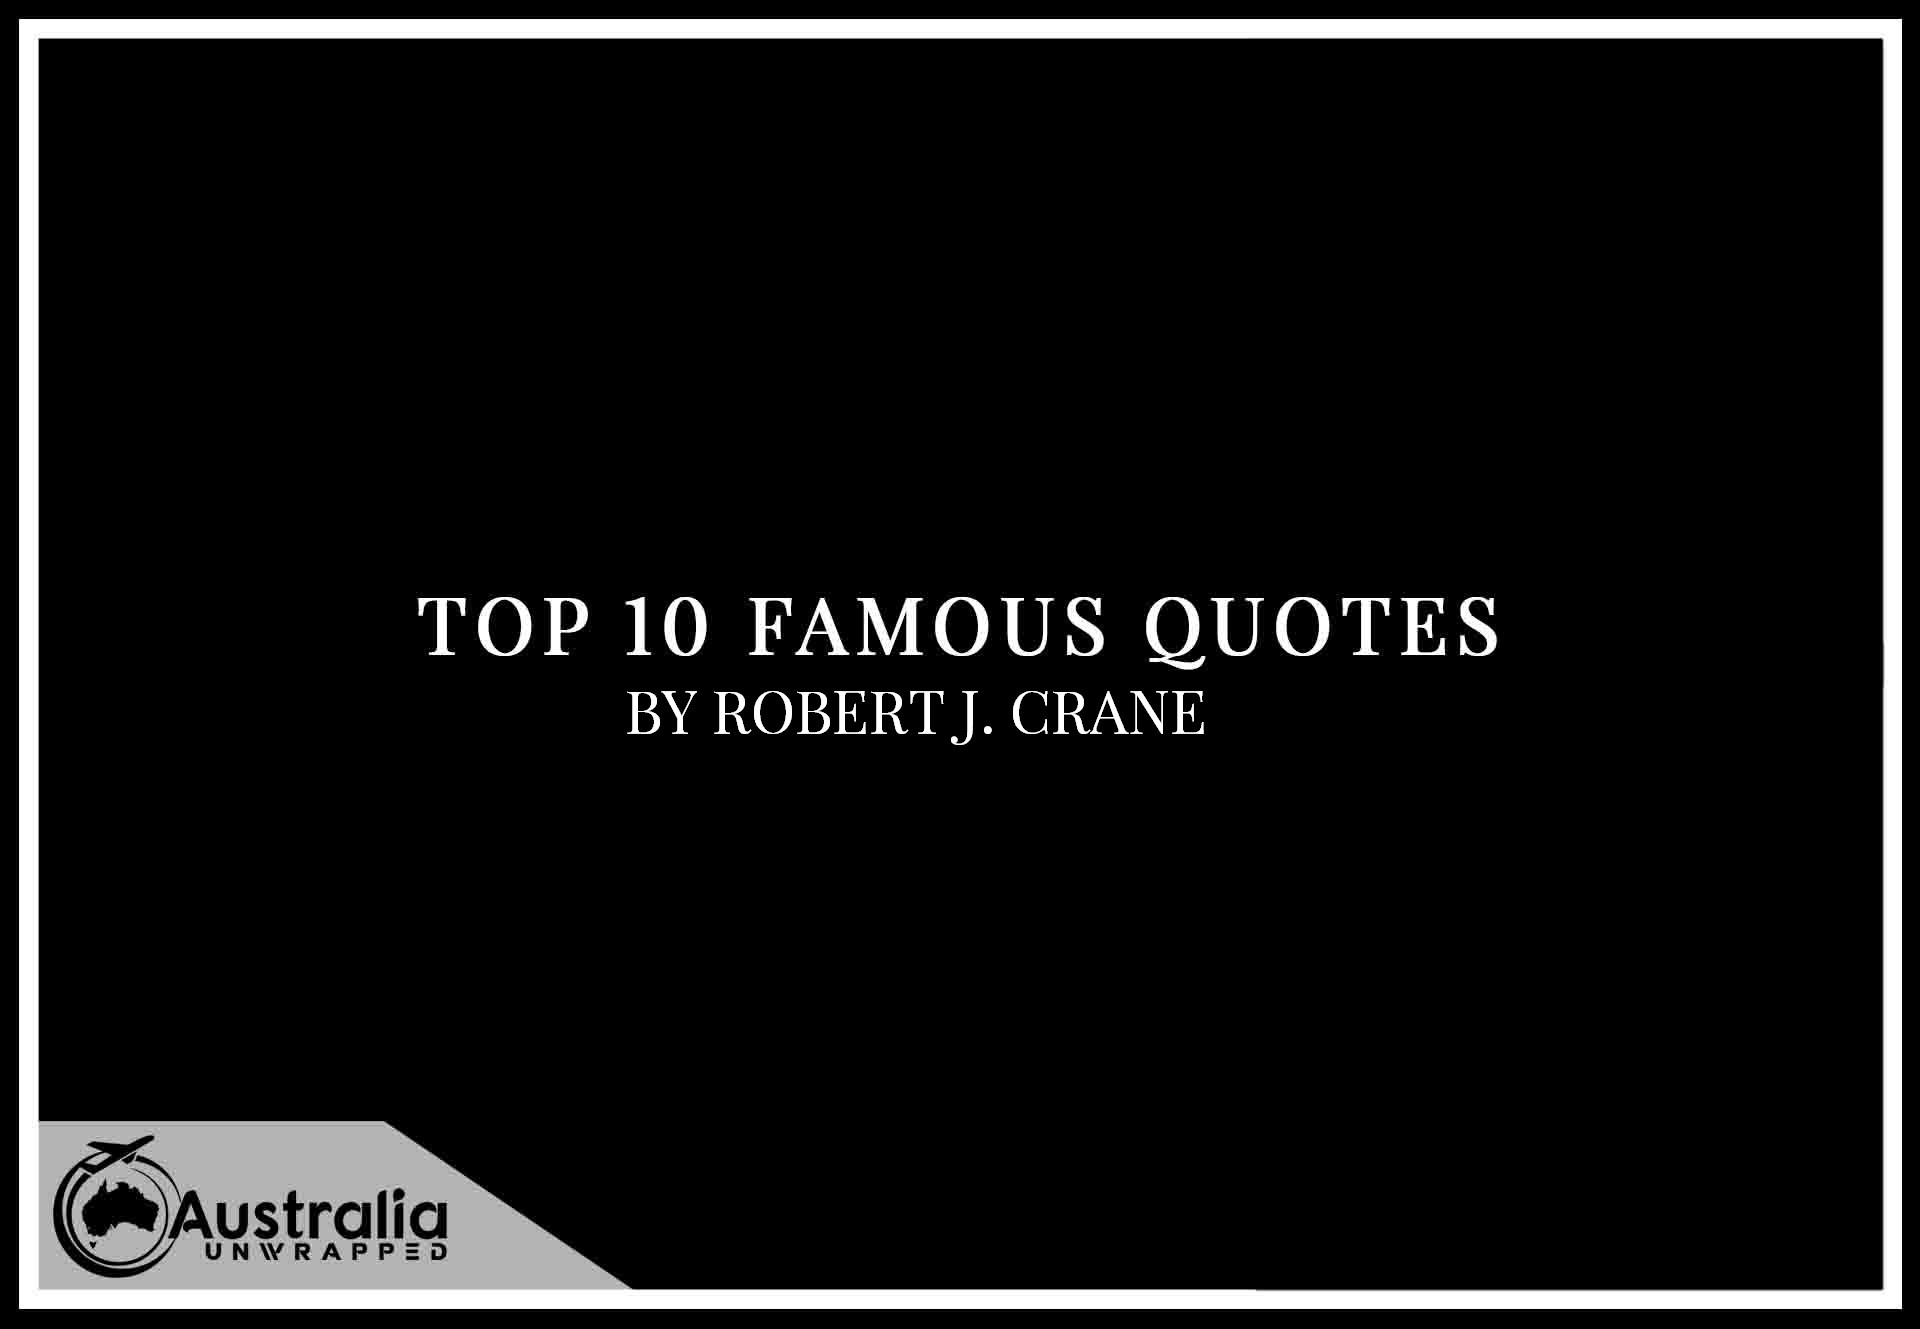 Top 10 Famous Quotes by Author Robert J. Crane